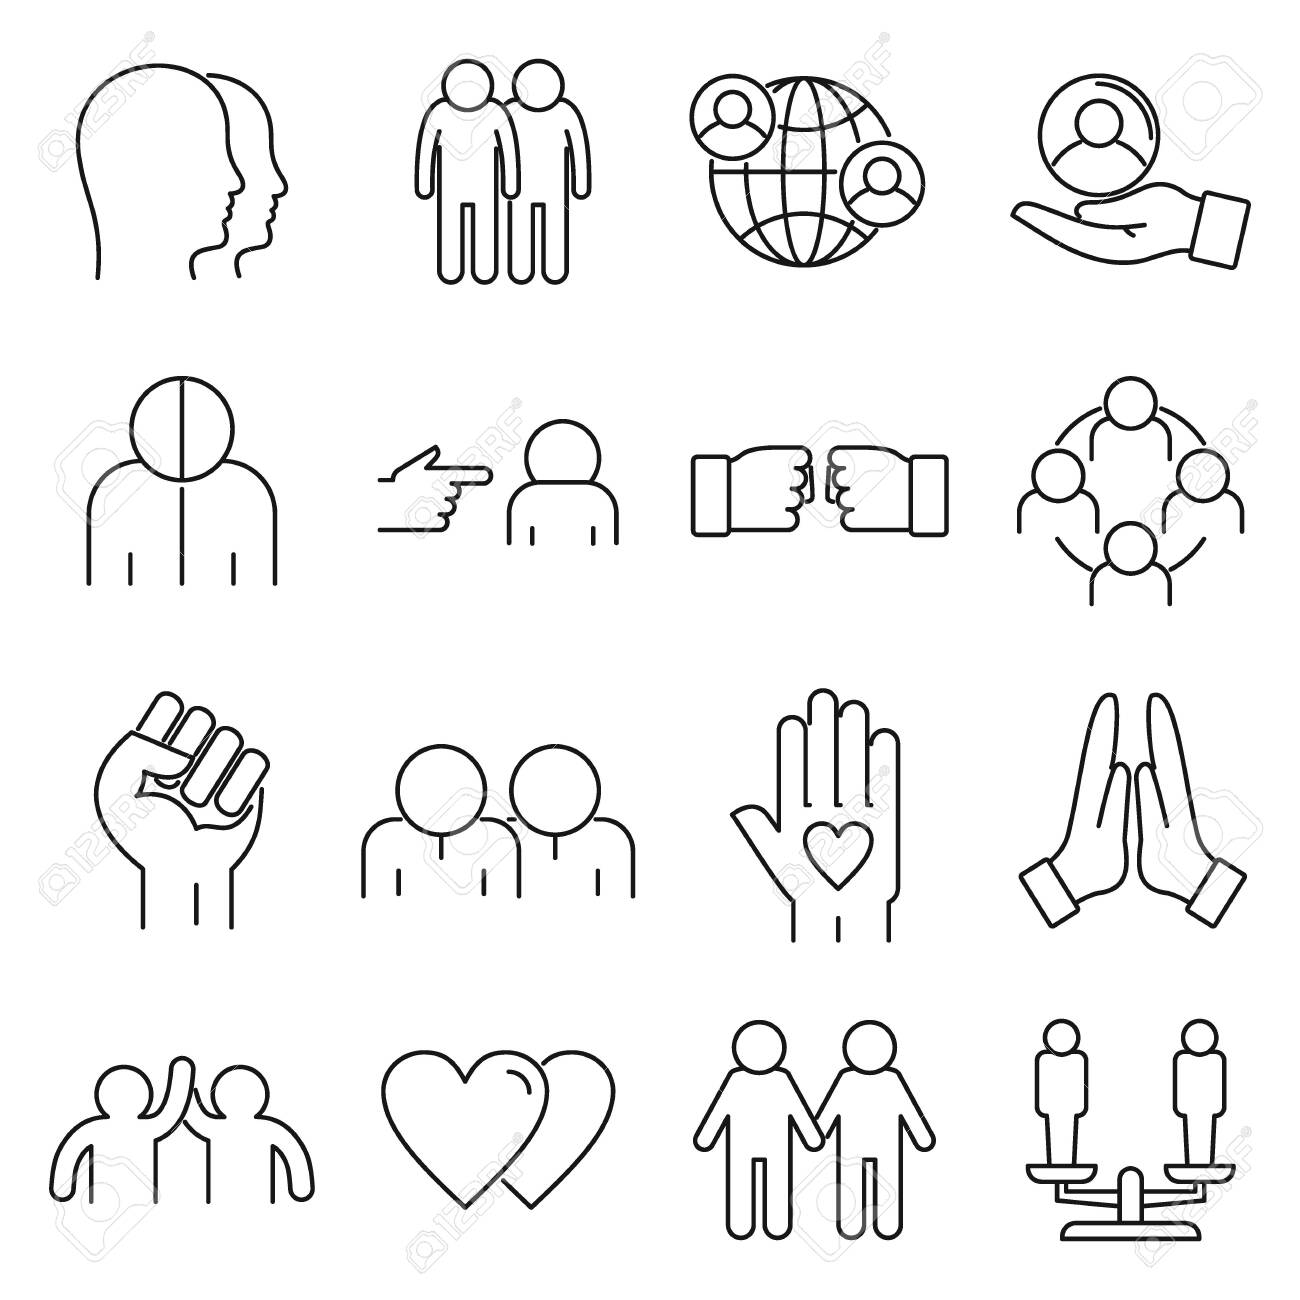 No to racism icons set, outline style - 152262018